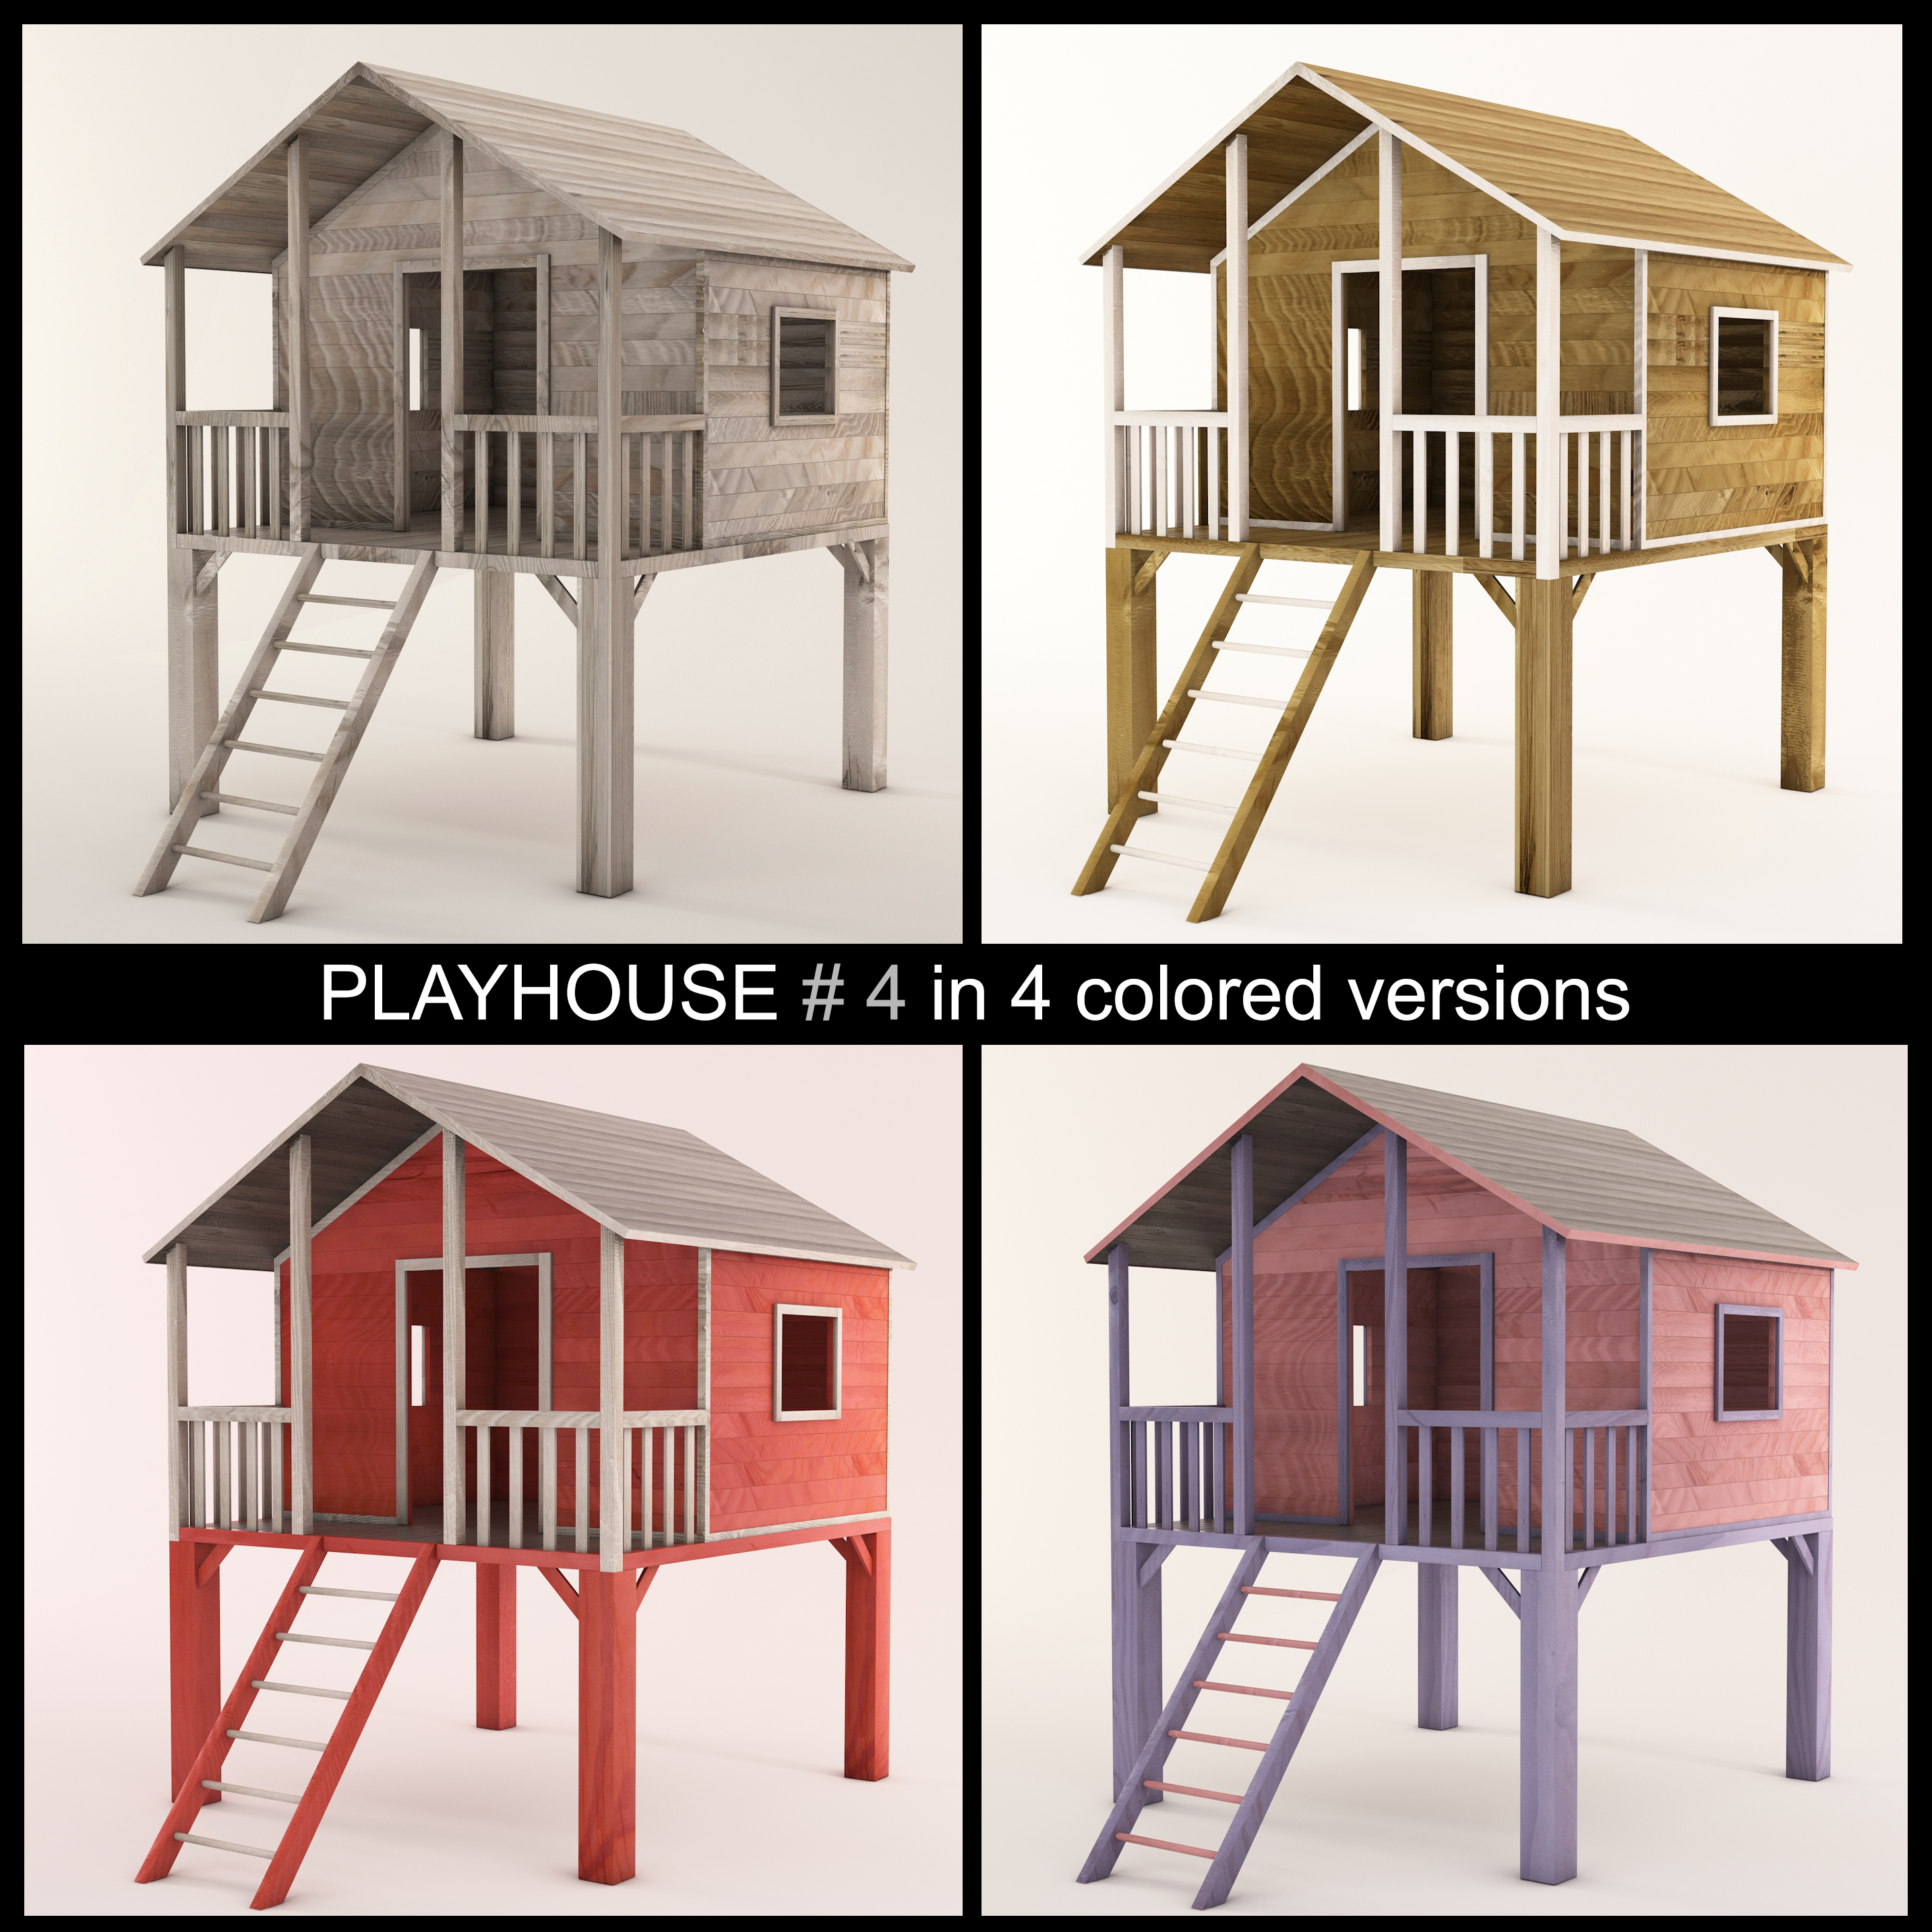 High Quality Wooden Children Playhouse On Stilts Ready To Use For Playground